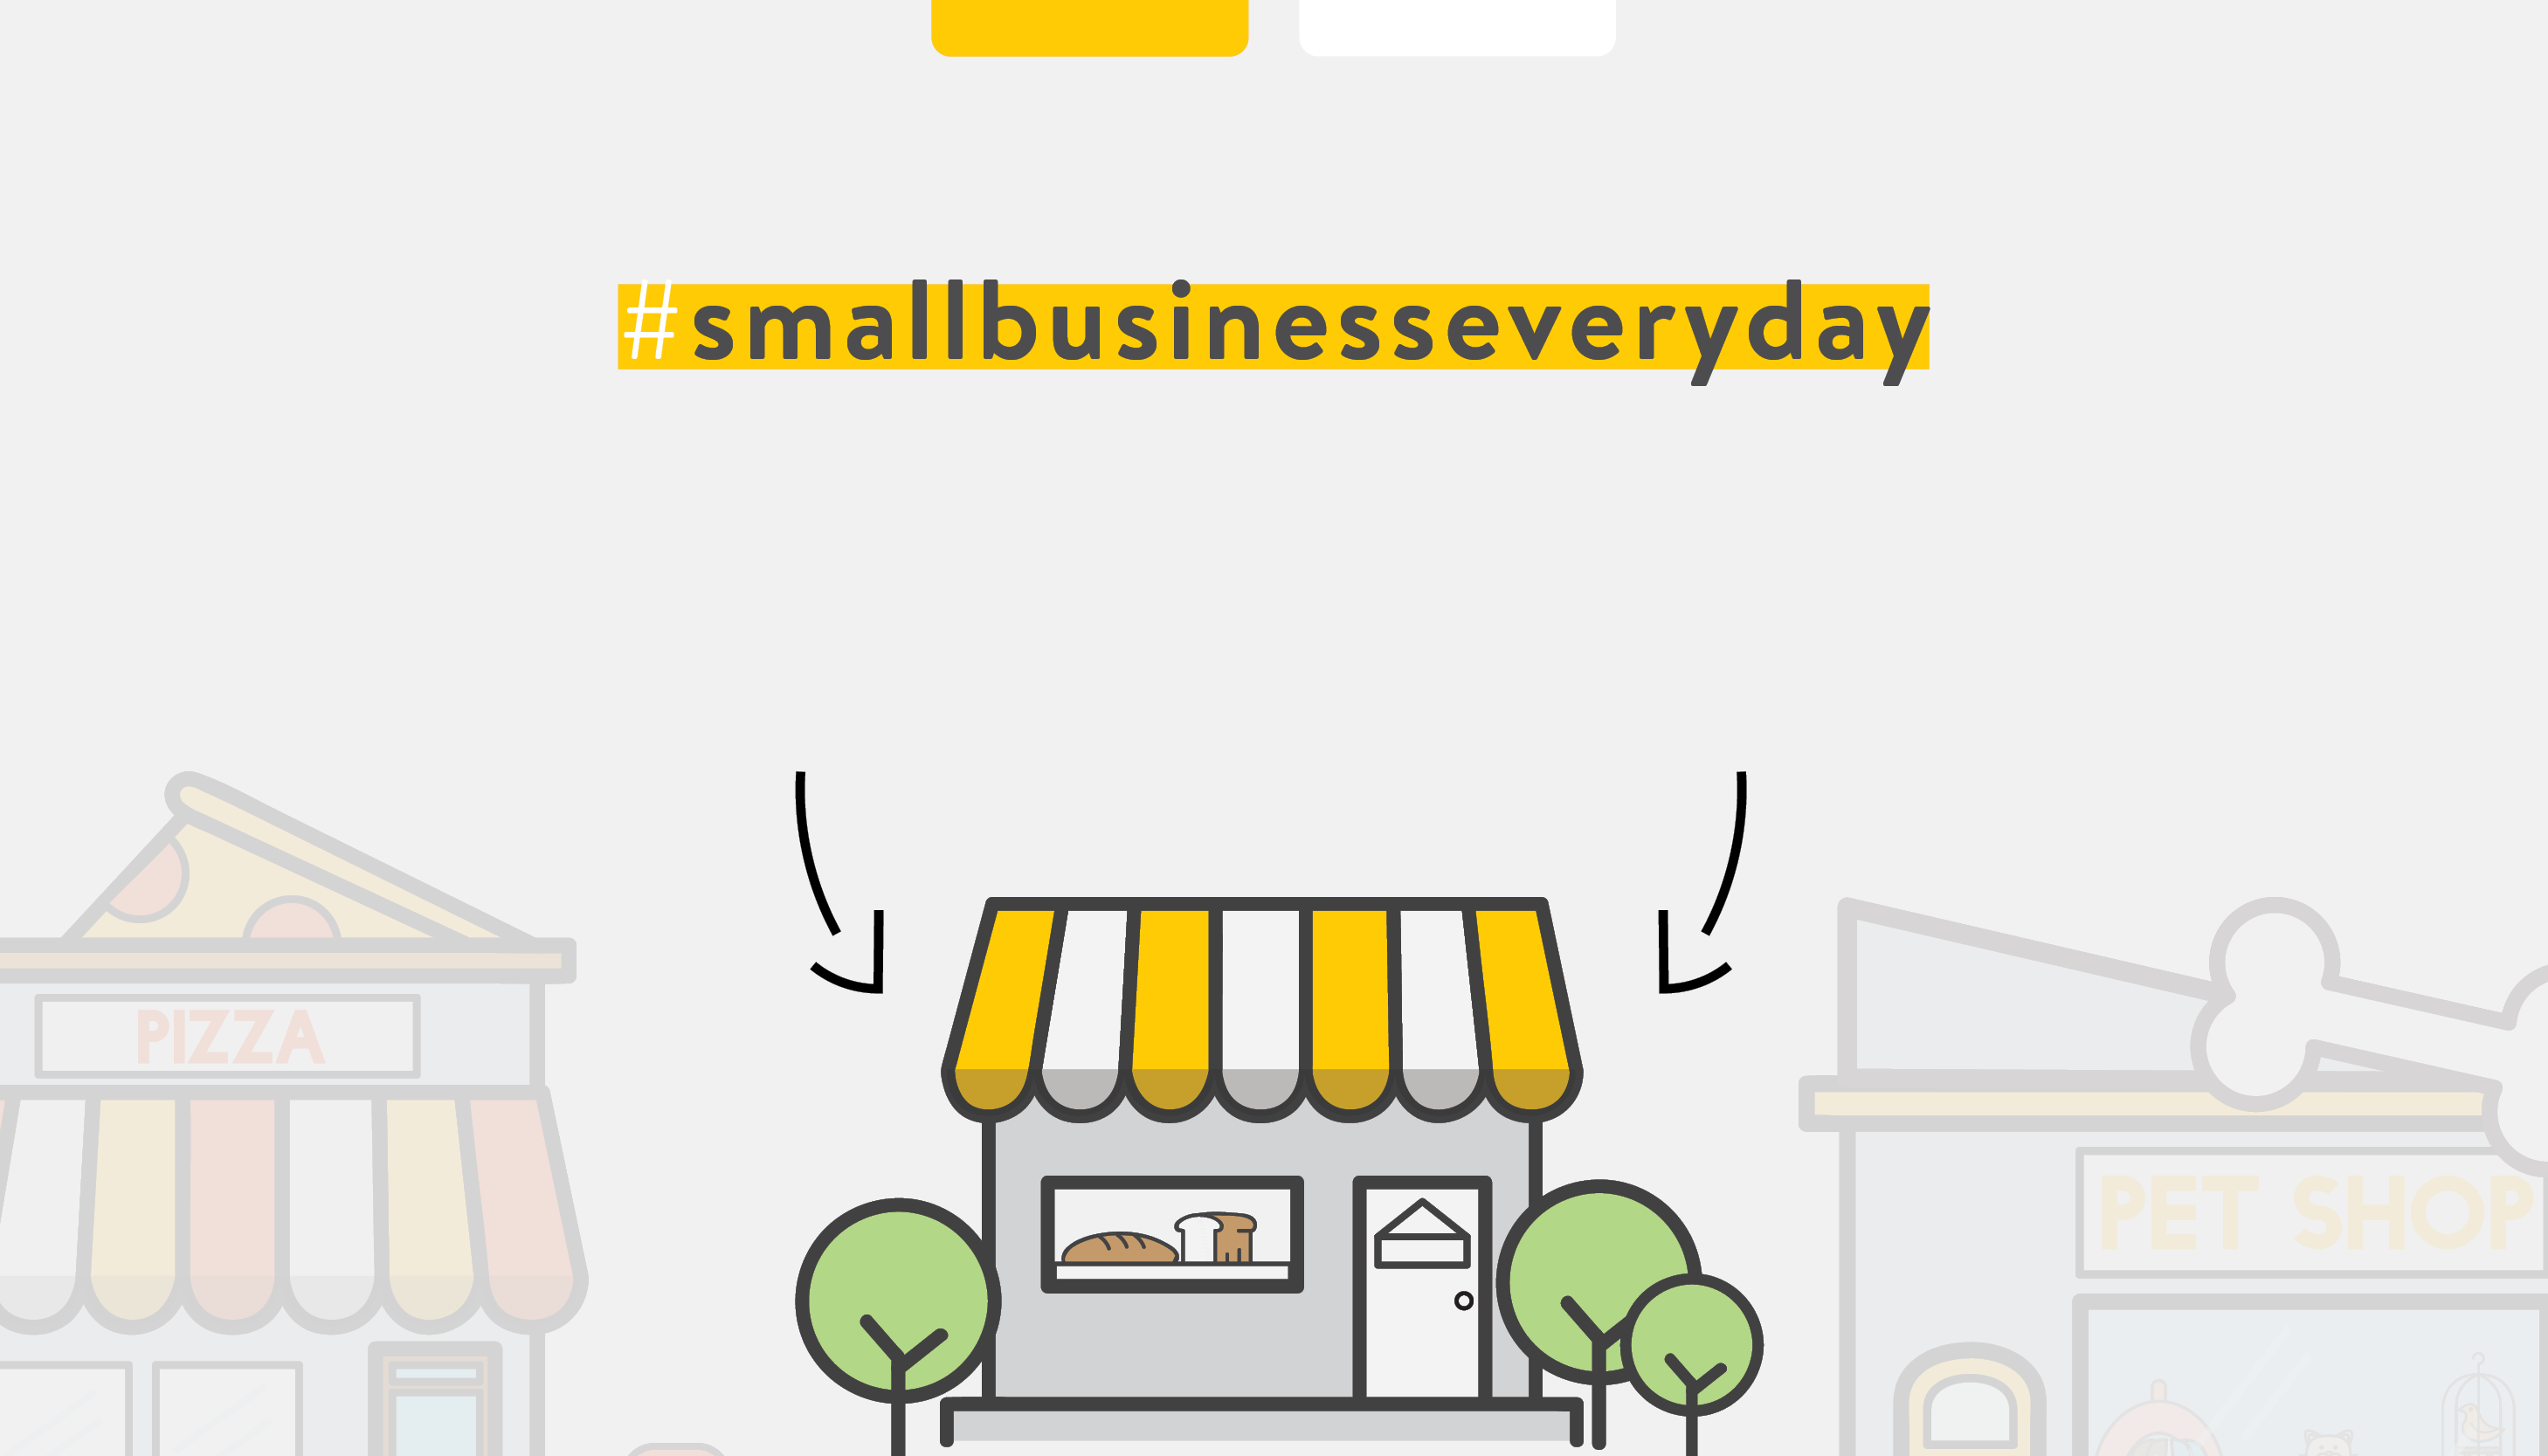 Vector of a storefront, #smallbusinesseveryday | Support Small Business | Benefits by Design